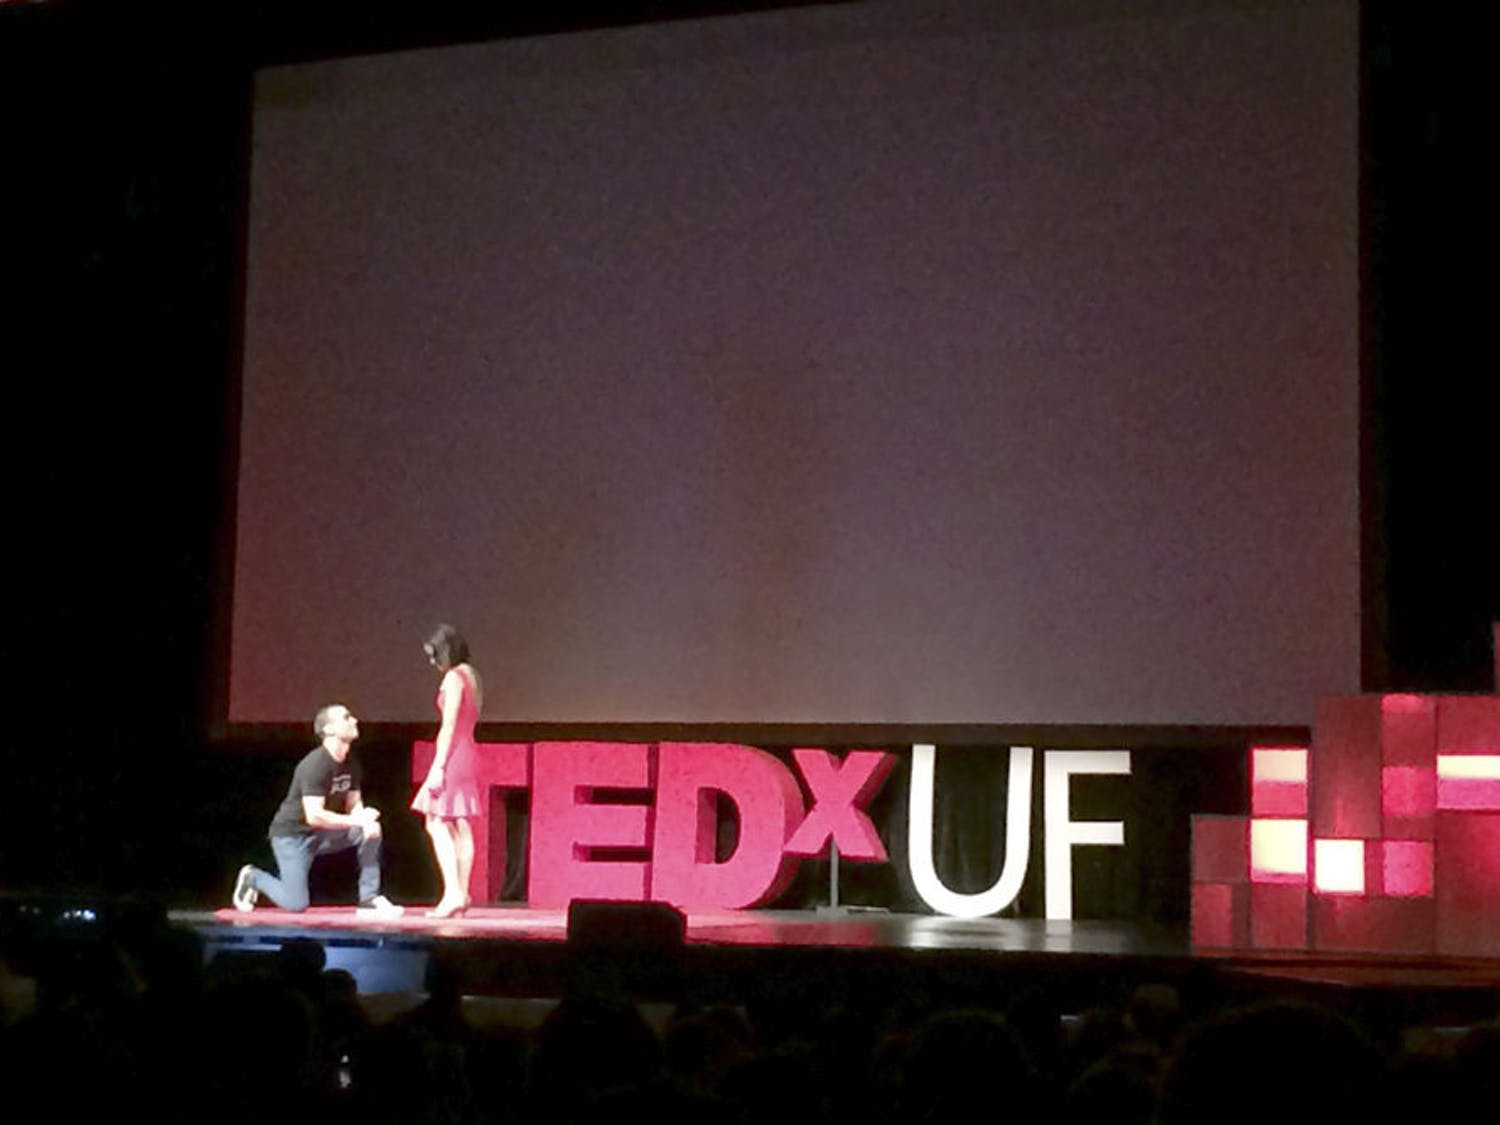 """Rob Castellucci, co-founder of RoomSync and founder of the Gator Salsa Club, proposes to his girlfriend after the end of his talk at TEDxUF on Saturday. """"I would go on for a thousand more reasons, but I'm pretty sure my 18 minutes is almost up,"""" Castellucci said. """"Will you marry me?"""""""